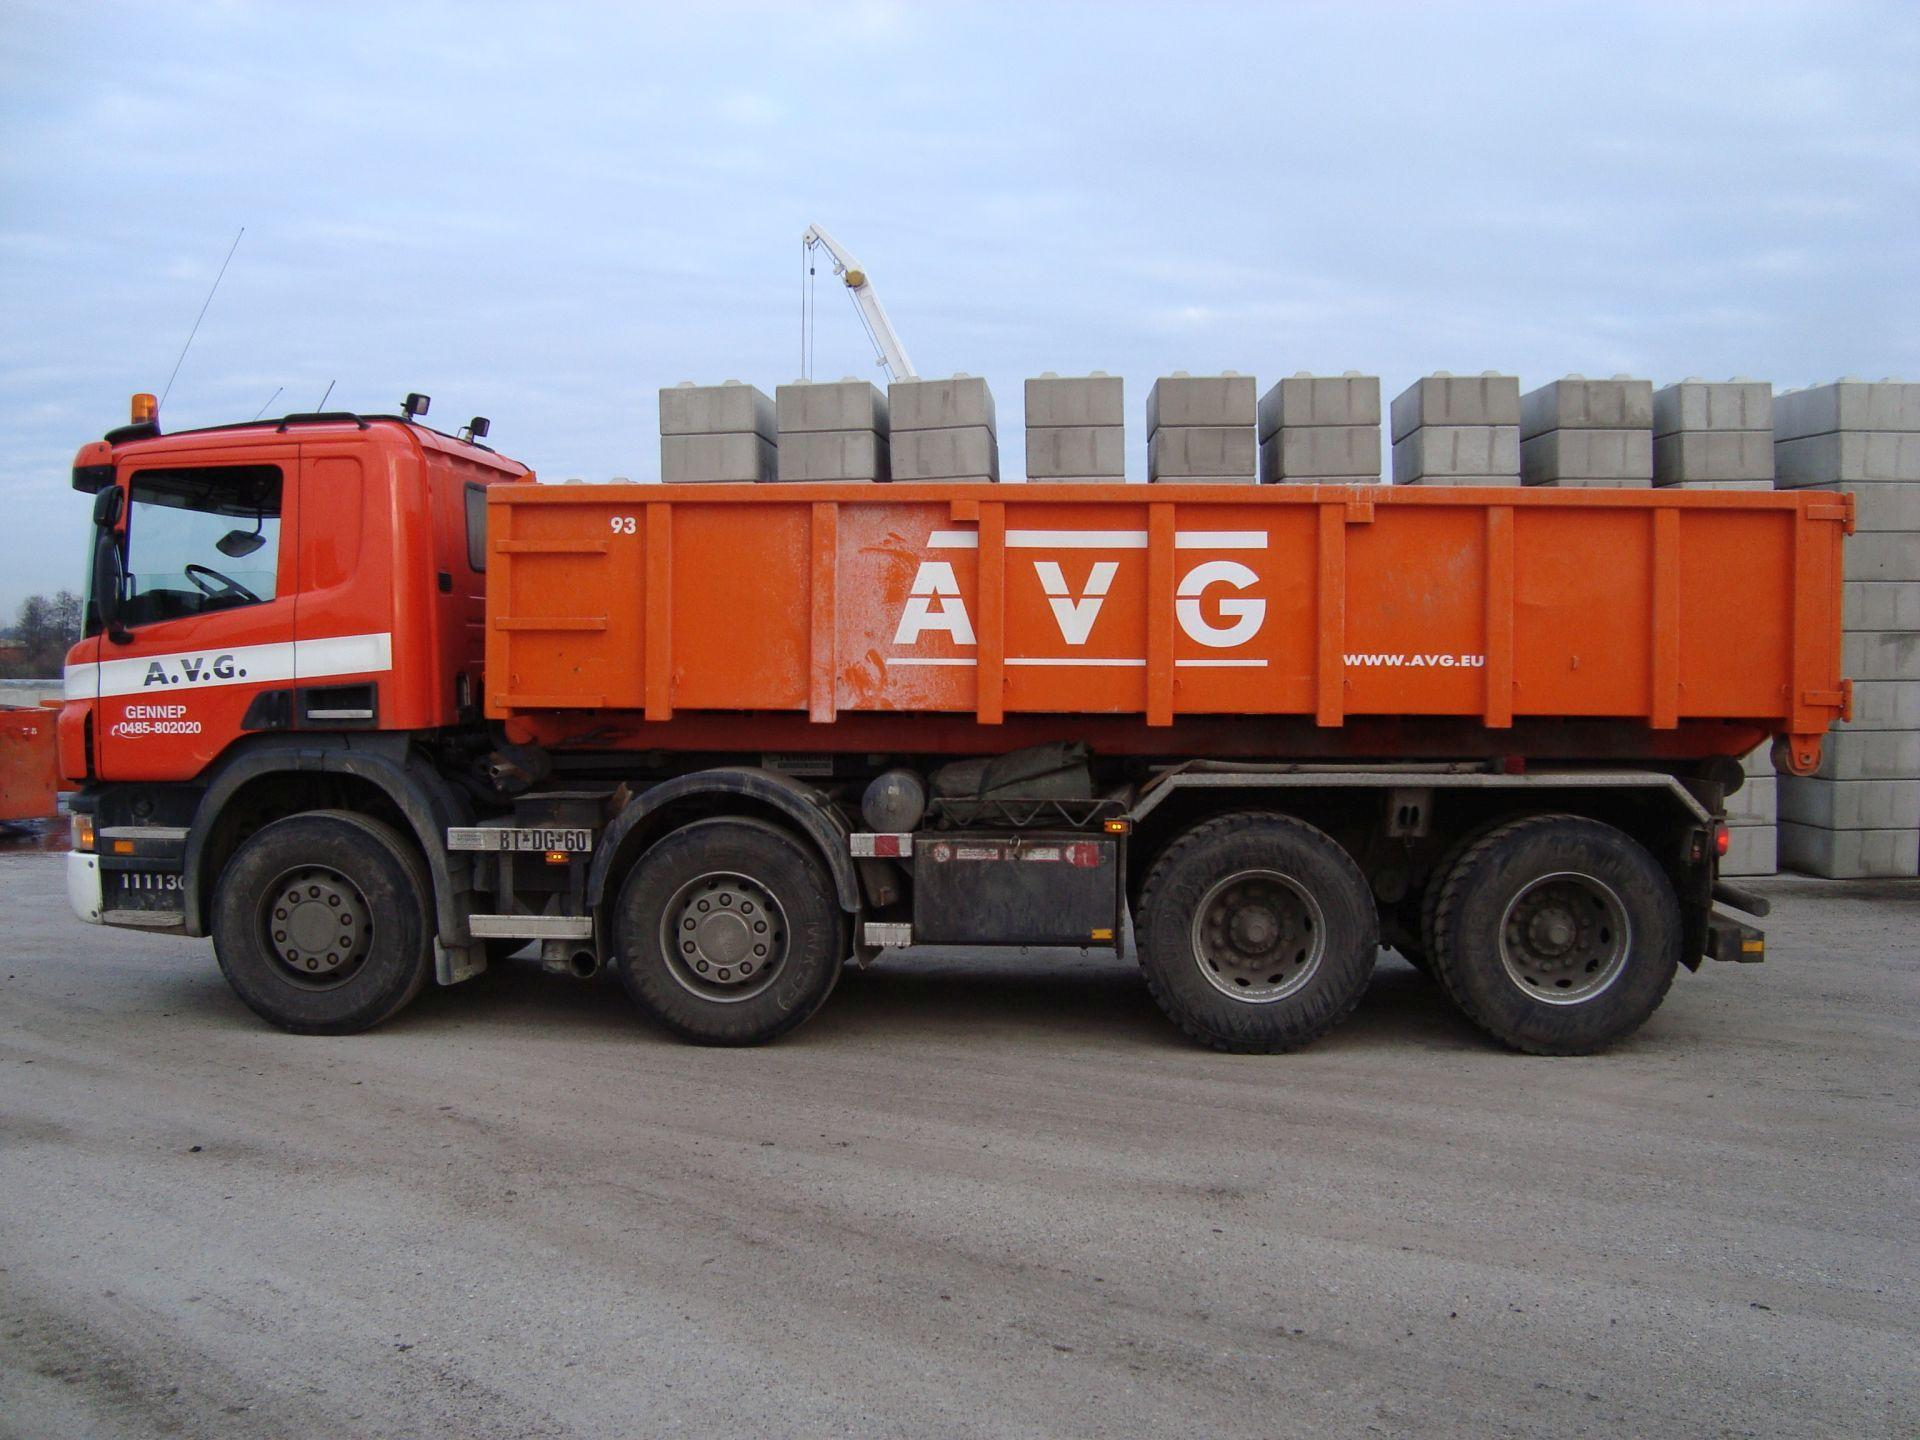 lange-container-2-avg-bouwstoffen